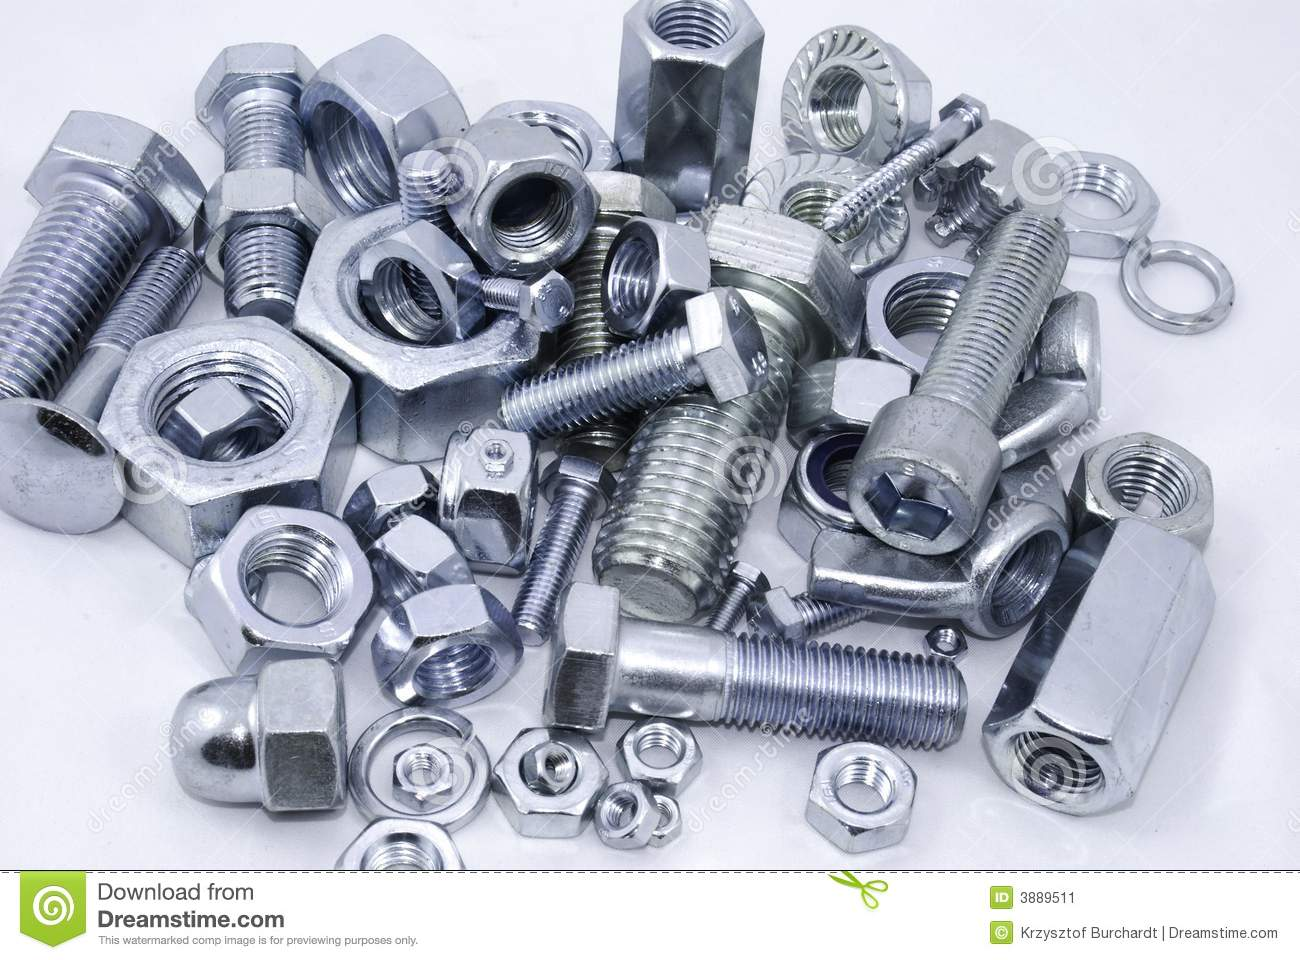 Diferent nuts and bolts